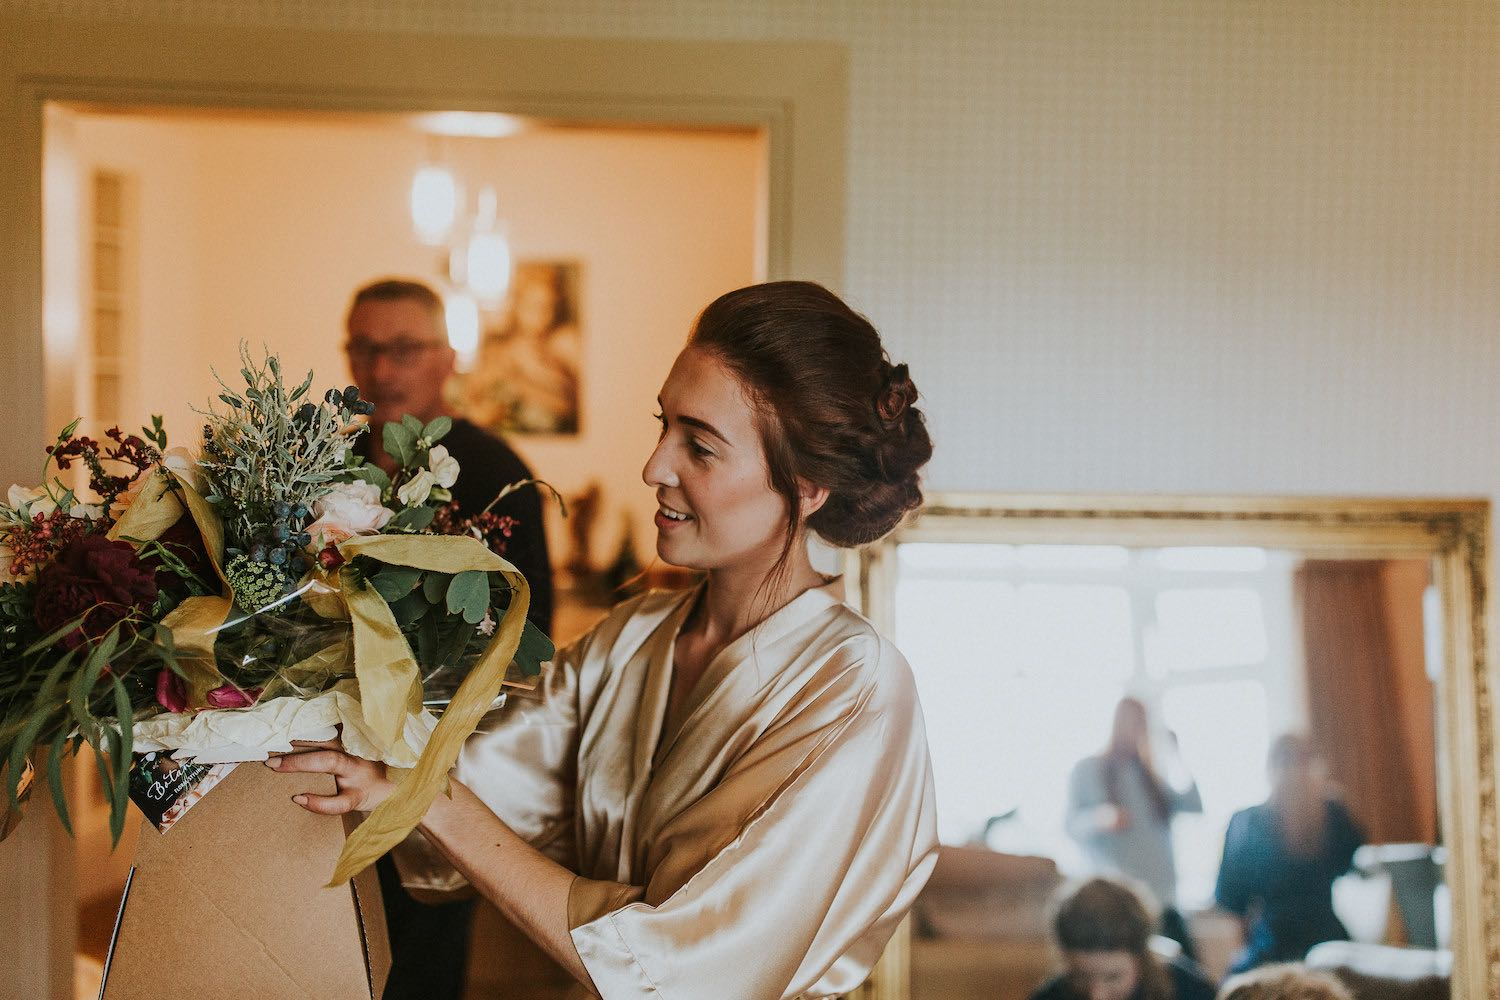 Brdie receiving flowers on morning of wedding